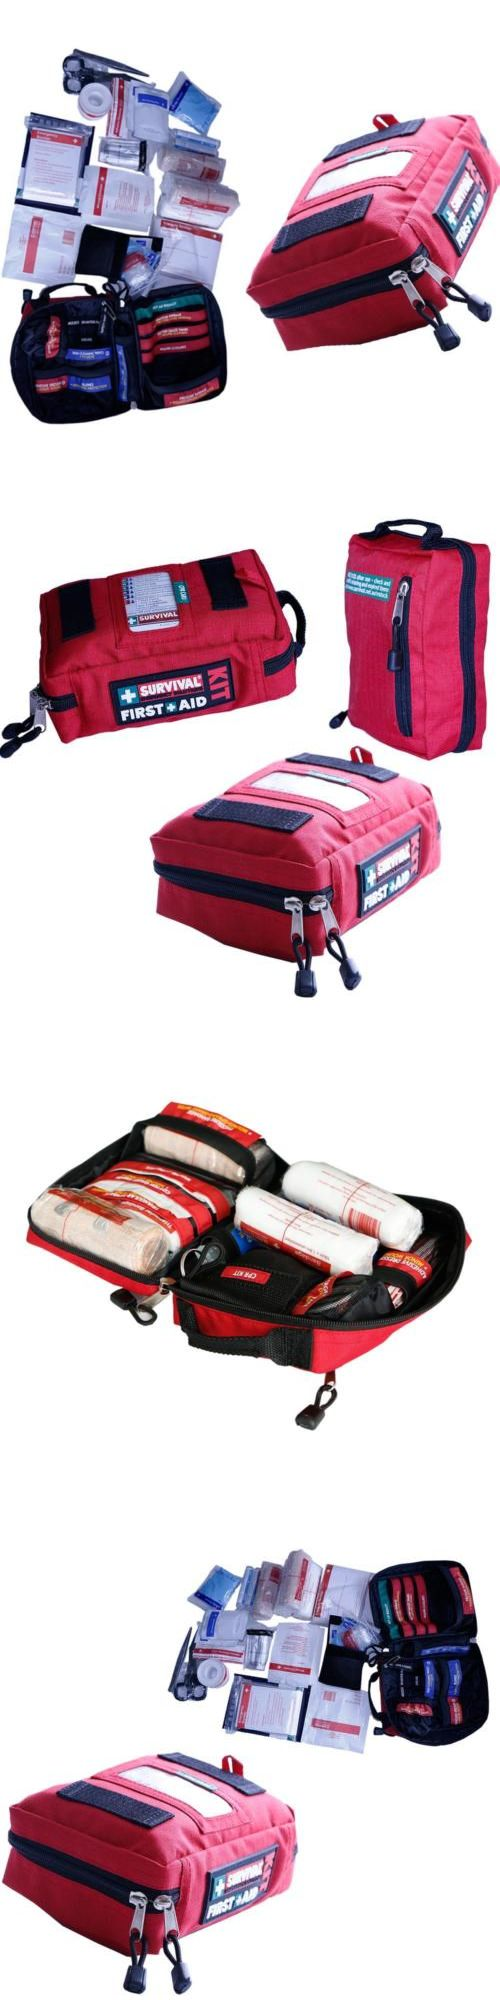 Kits and Bags: First Aid Kit Pack Emergency Home Outdoor Treatment Survival Medical Rescue Bag -> BUY IT NOW ONLY: $32.99 on eBay!